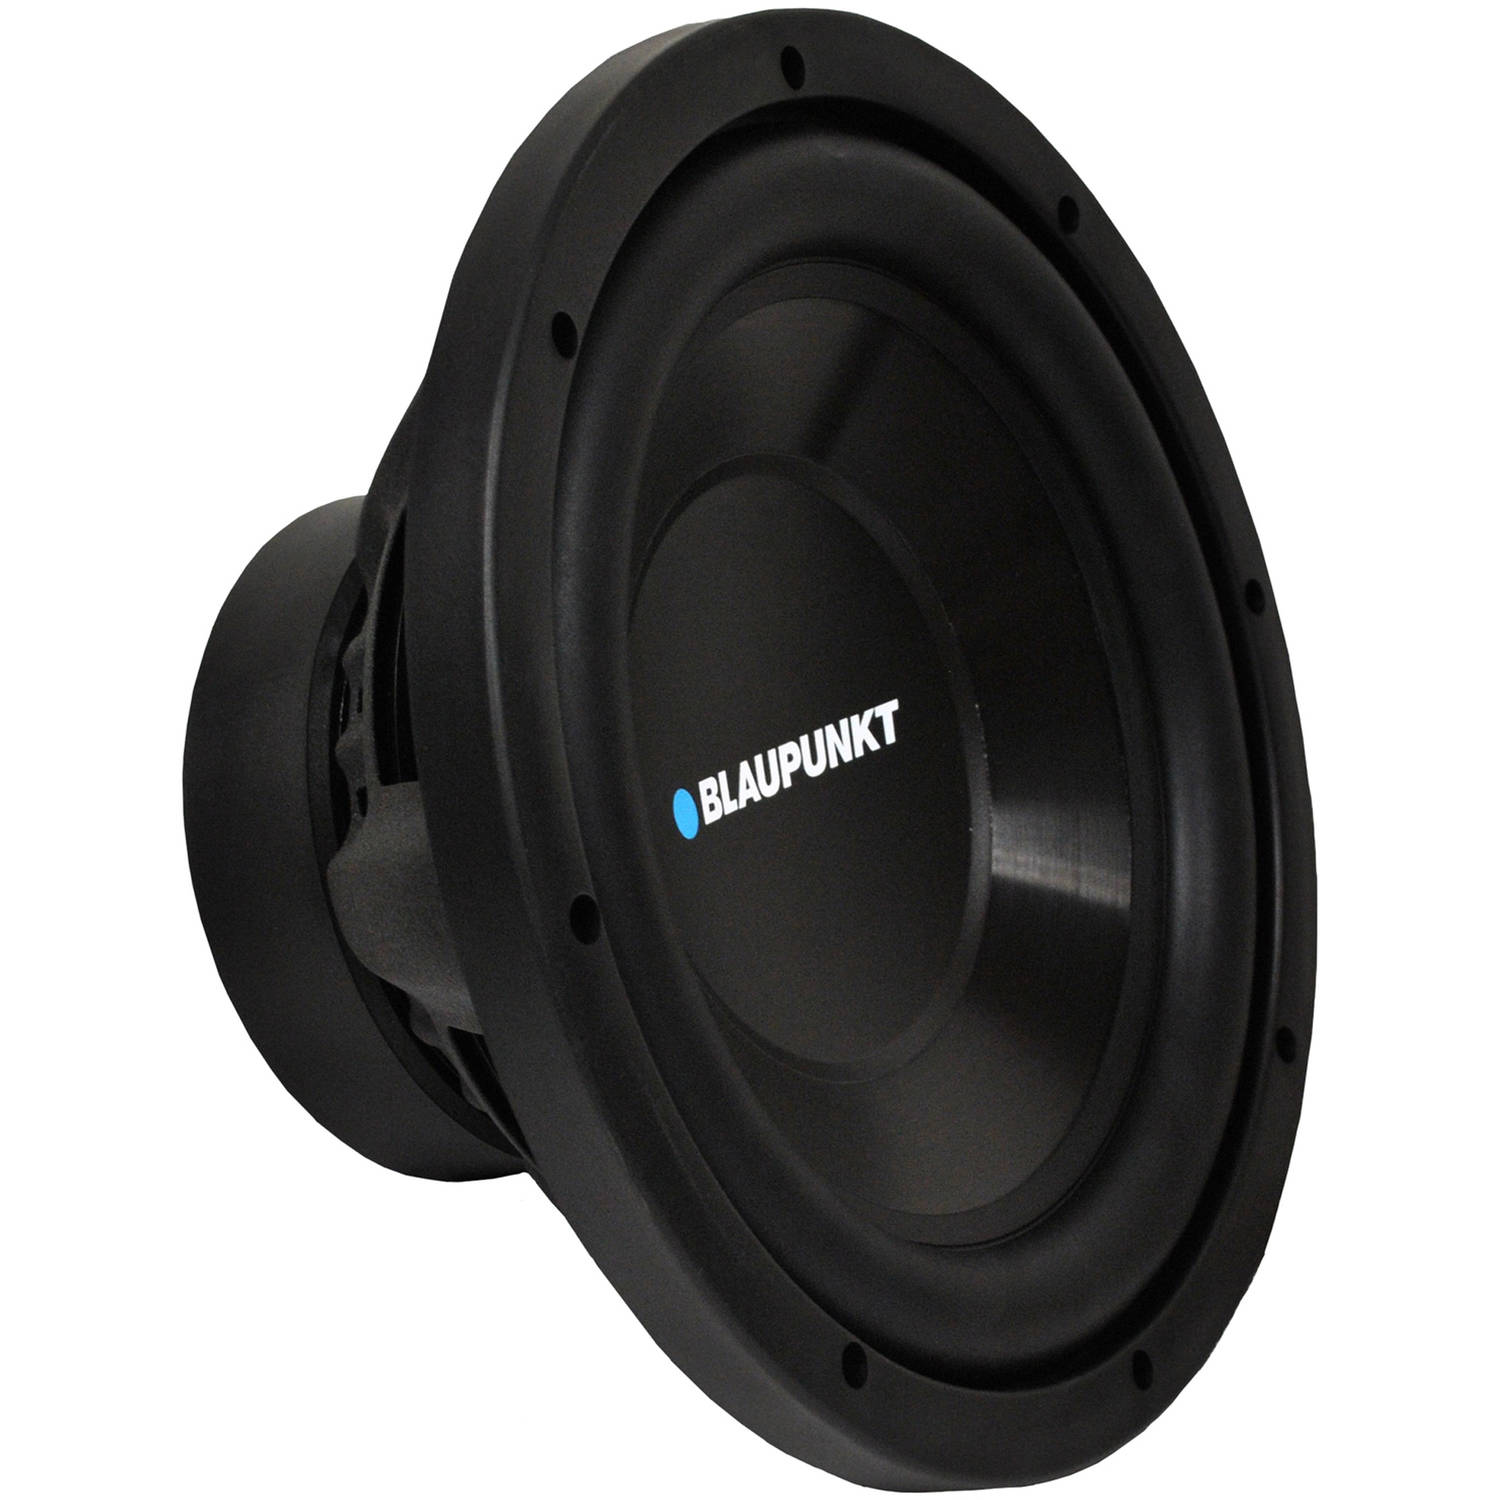 "Blaupunkt 12"" Single Voice Coil Subwoofer with 800W Power (GBW120)"